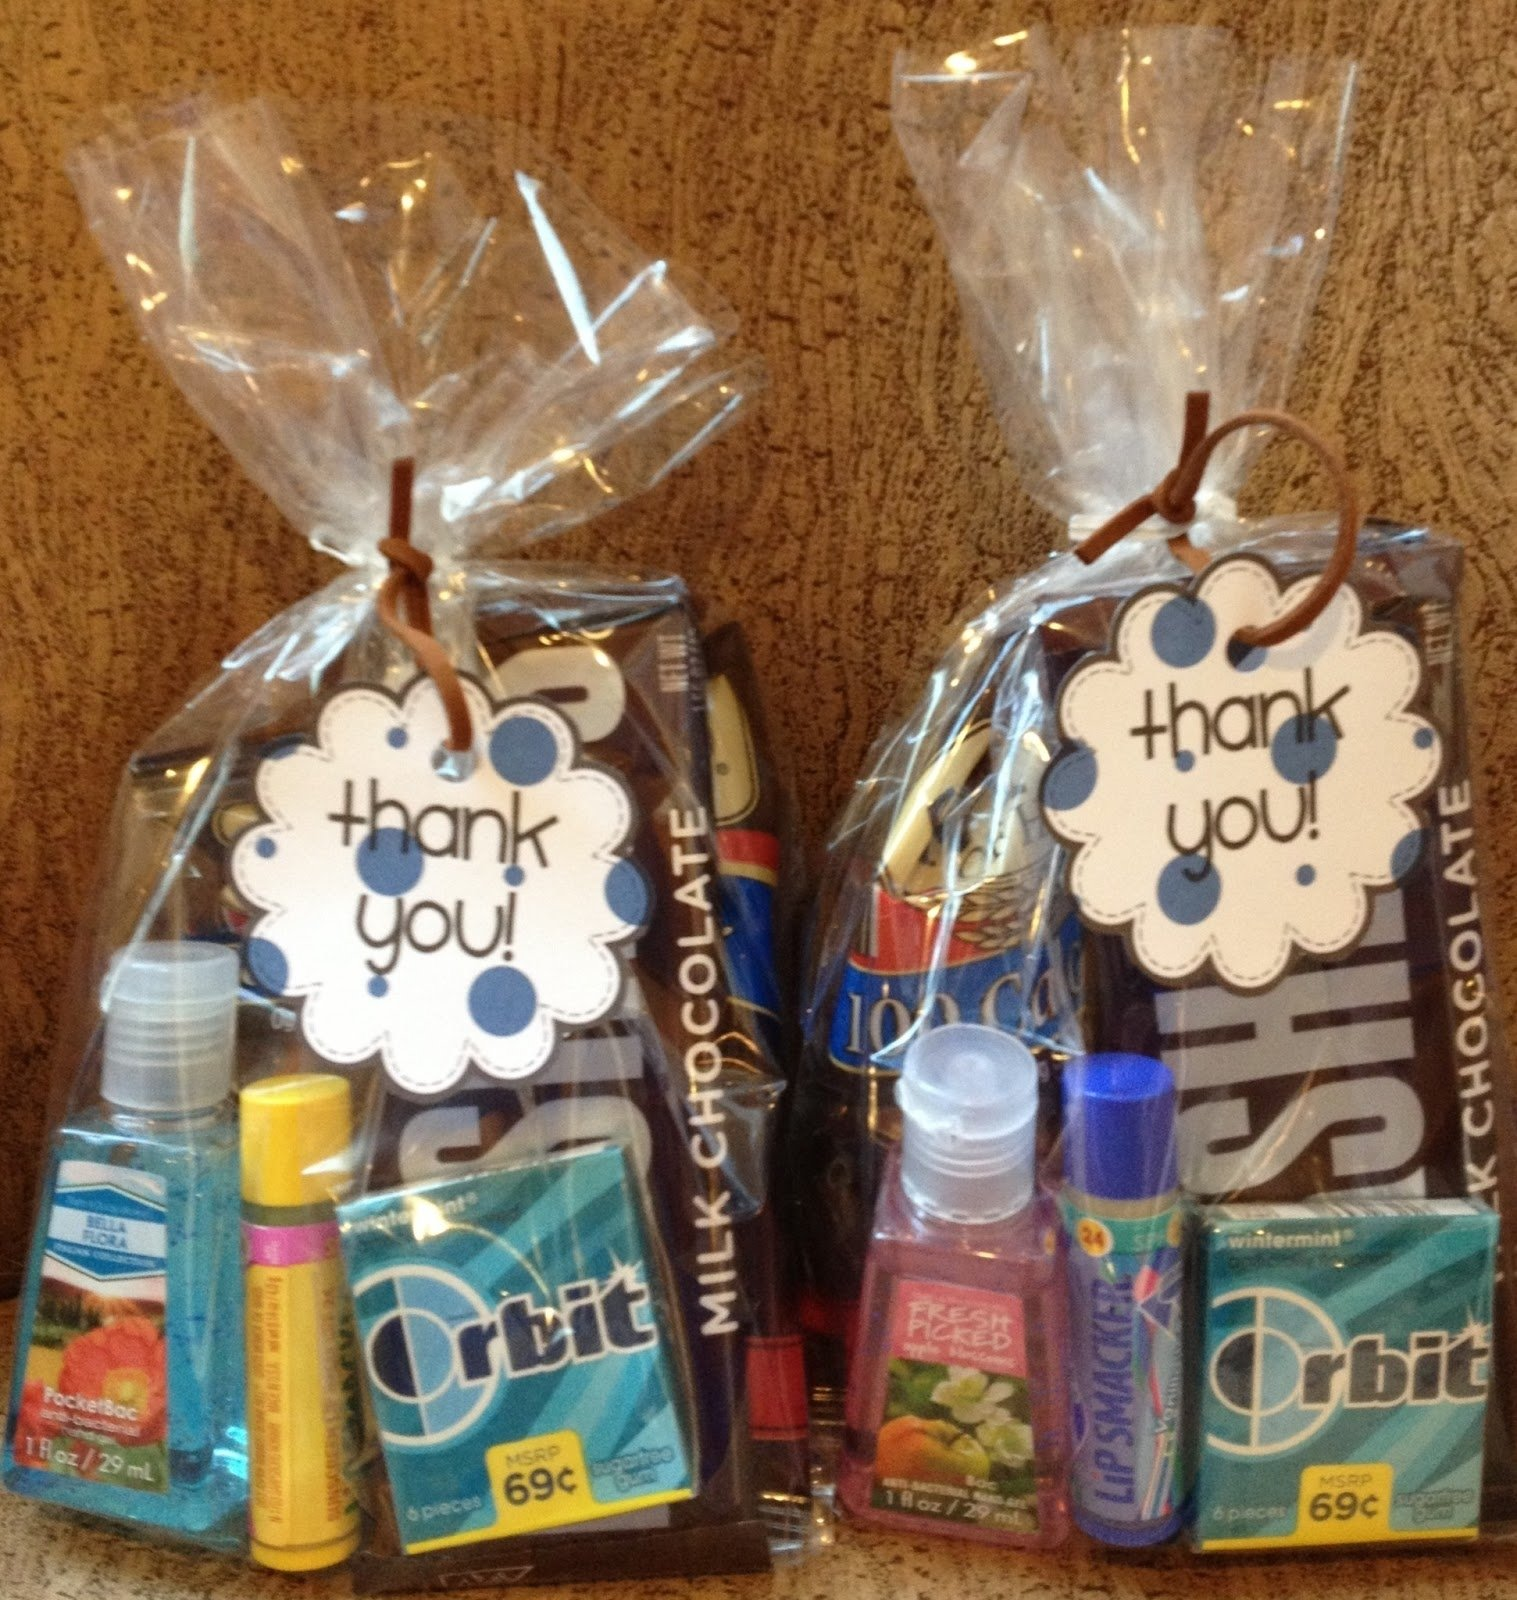 10 Awesome Goodie Bag Ideas For Adults 58 cheap goodie bag ideas for adults party favor ideas party favors 2021